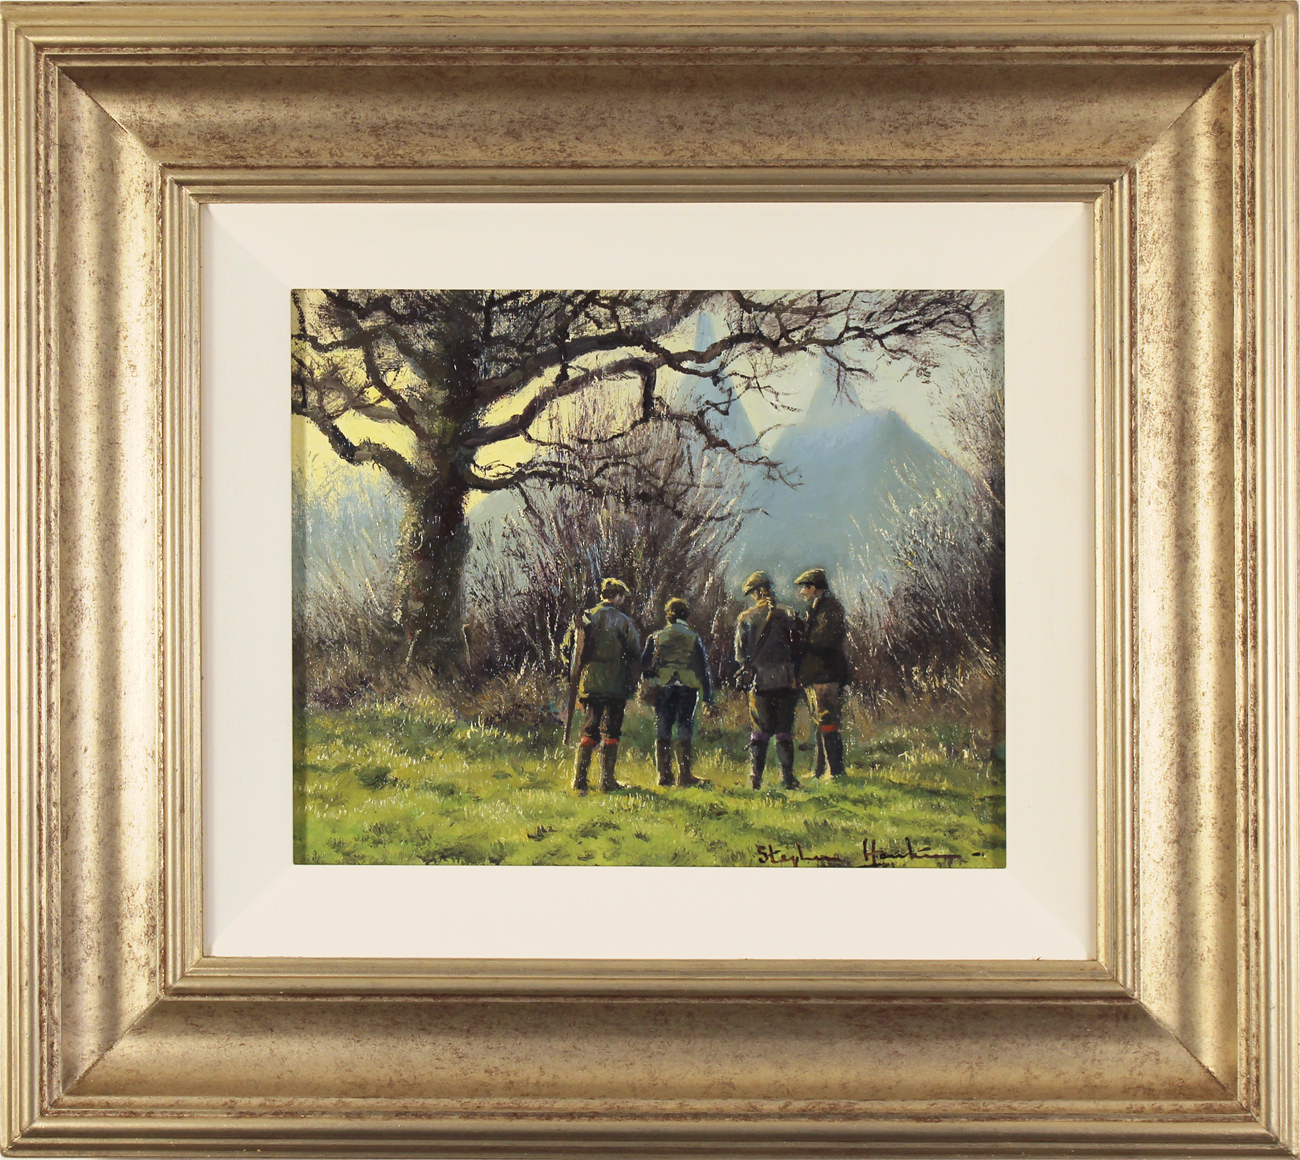 Stephen Hawkins, Original oil painting on canvas, The Shooting Party, North Yorkshire Click to enlarge